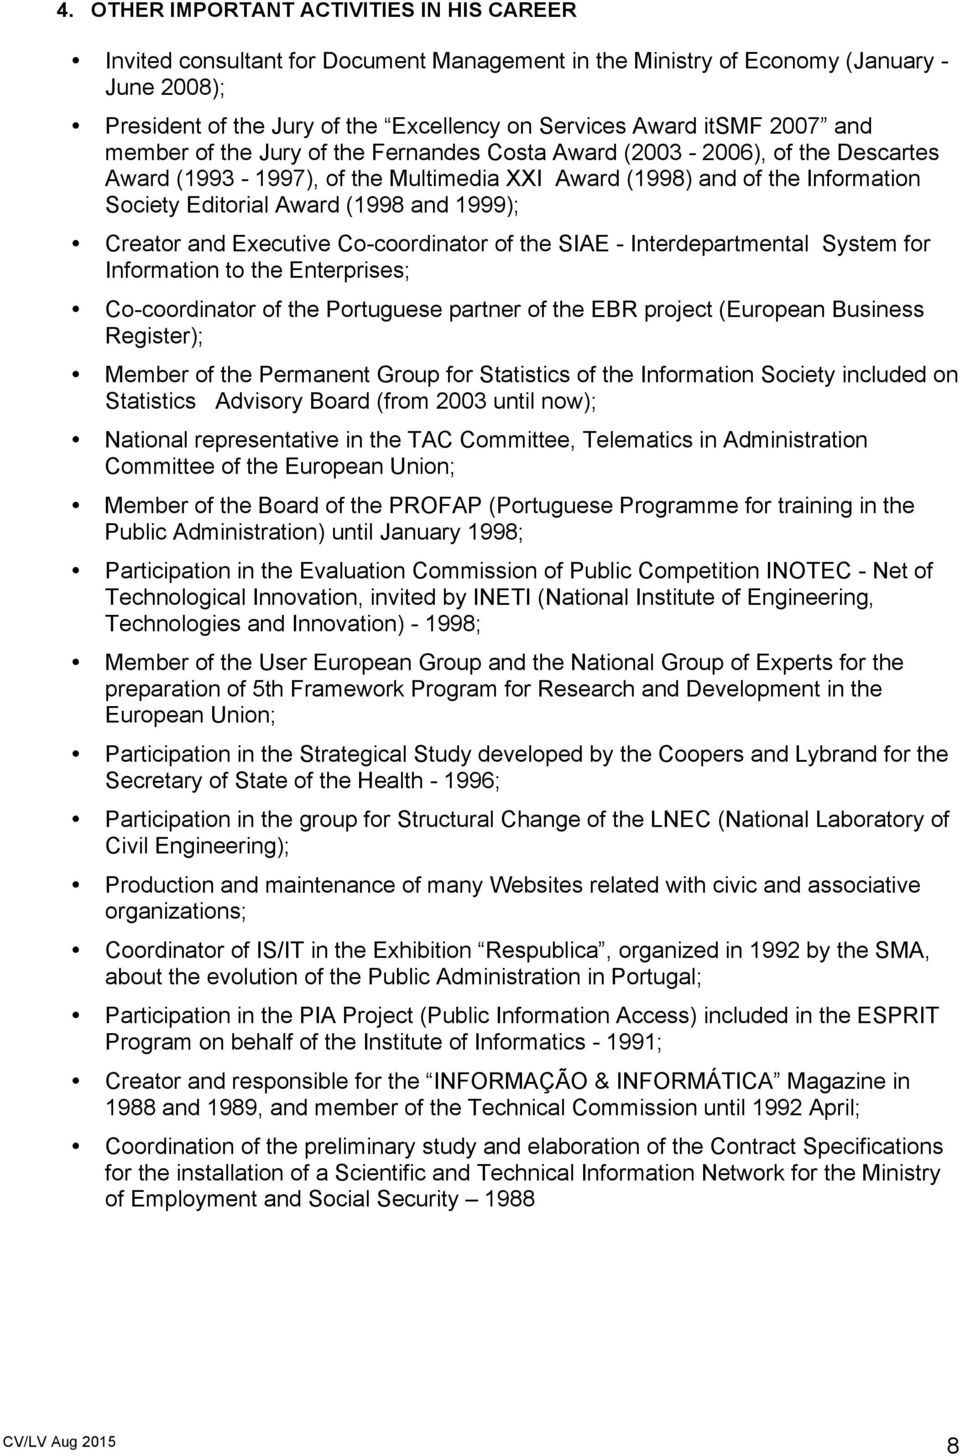 and 1999); Creator and Executive Co-coordinator of the SIAE - Interdepartmental System for Information to the Enterprises; Co-coordinator of the Portuguese partner of the EBR project (European